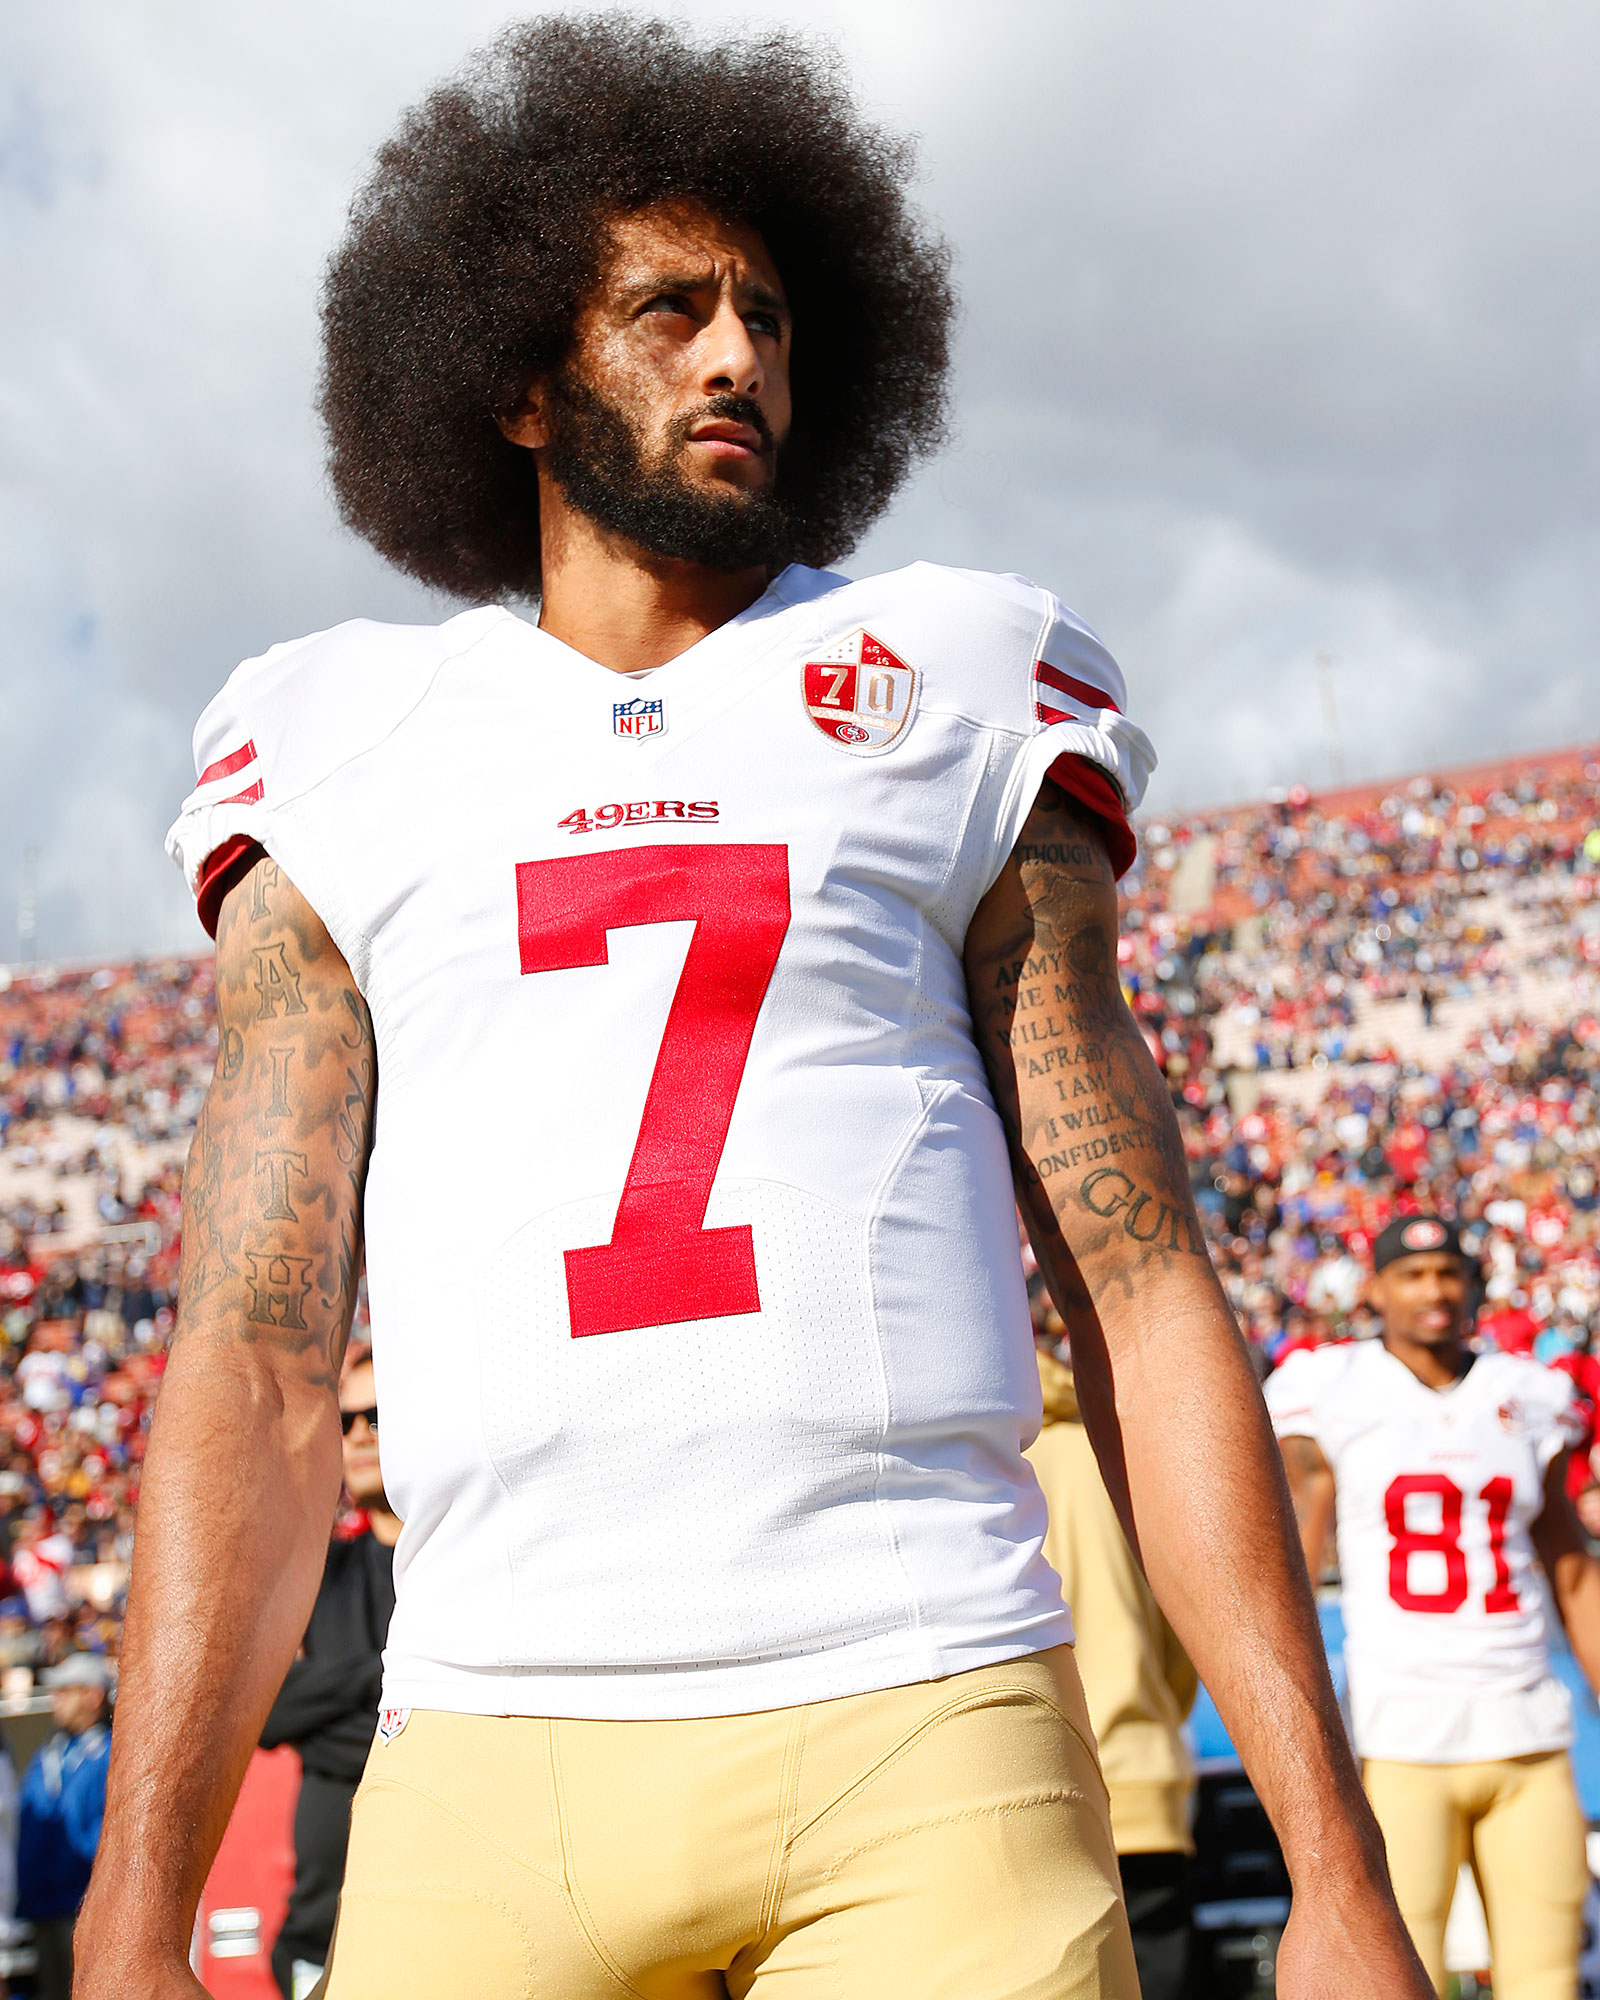 Beyonce Presents Sports Illustrated Award to Colin Kaepernick